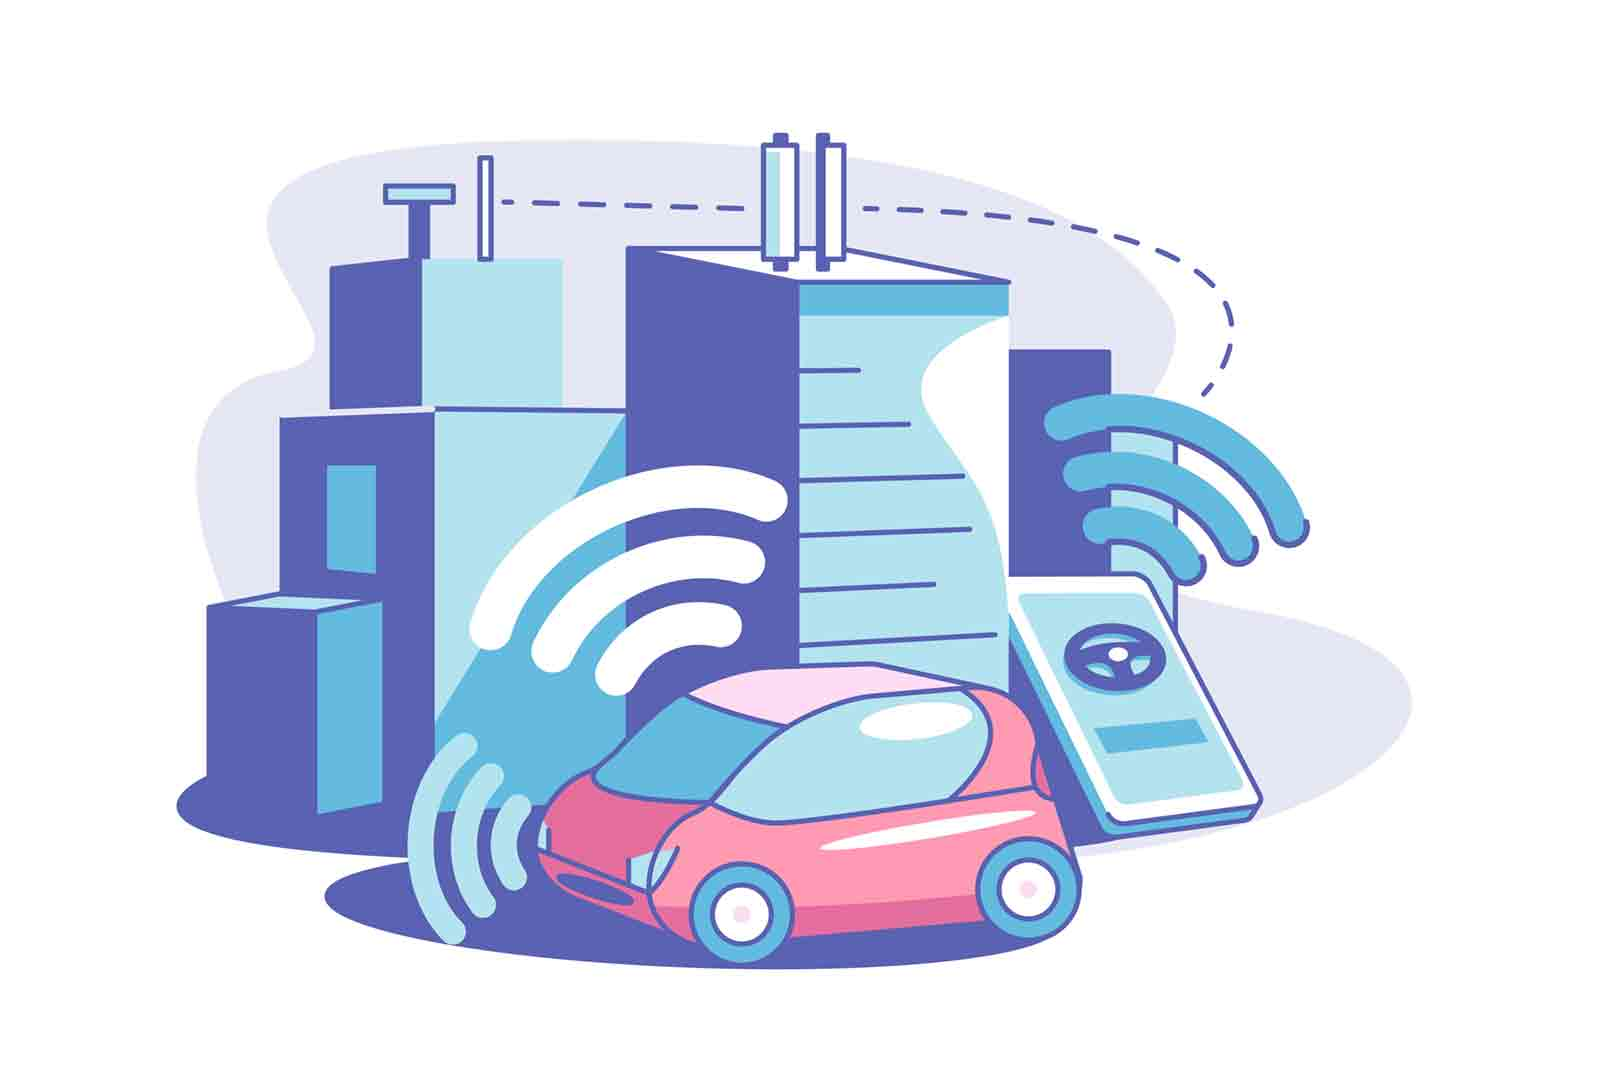 Smart connected city vector illustration. Wireless communication network. Controlling home appliances with device. Innovation technology concept.